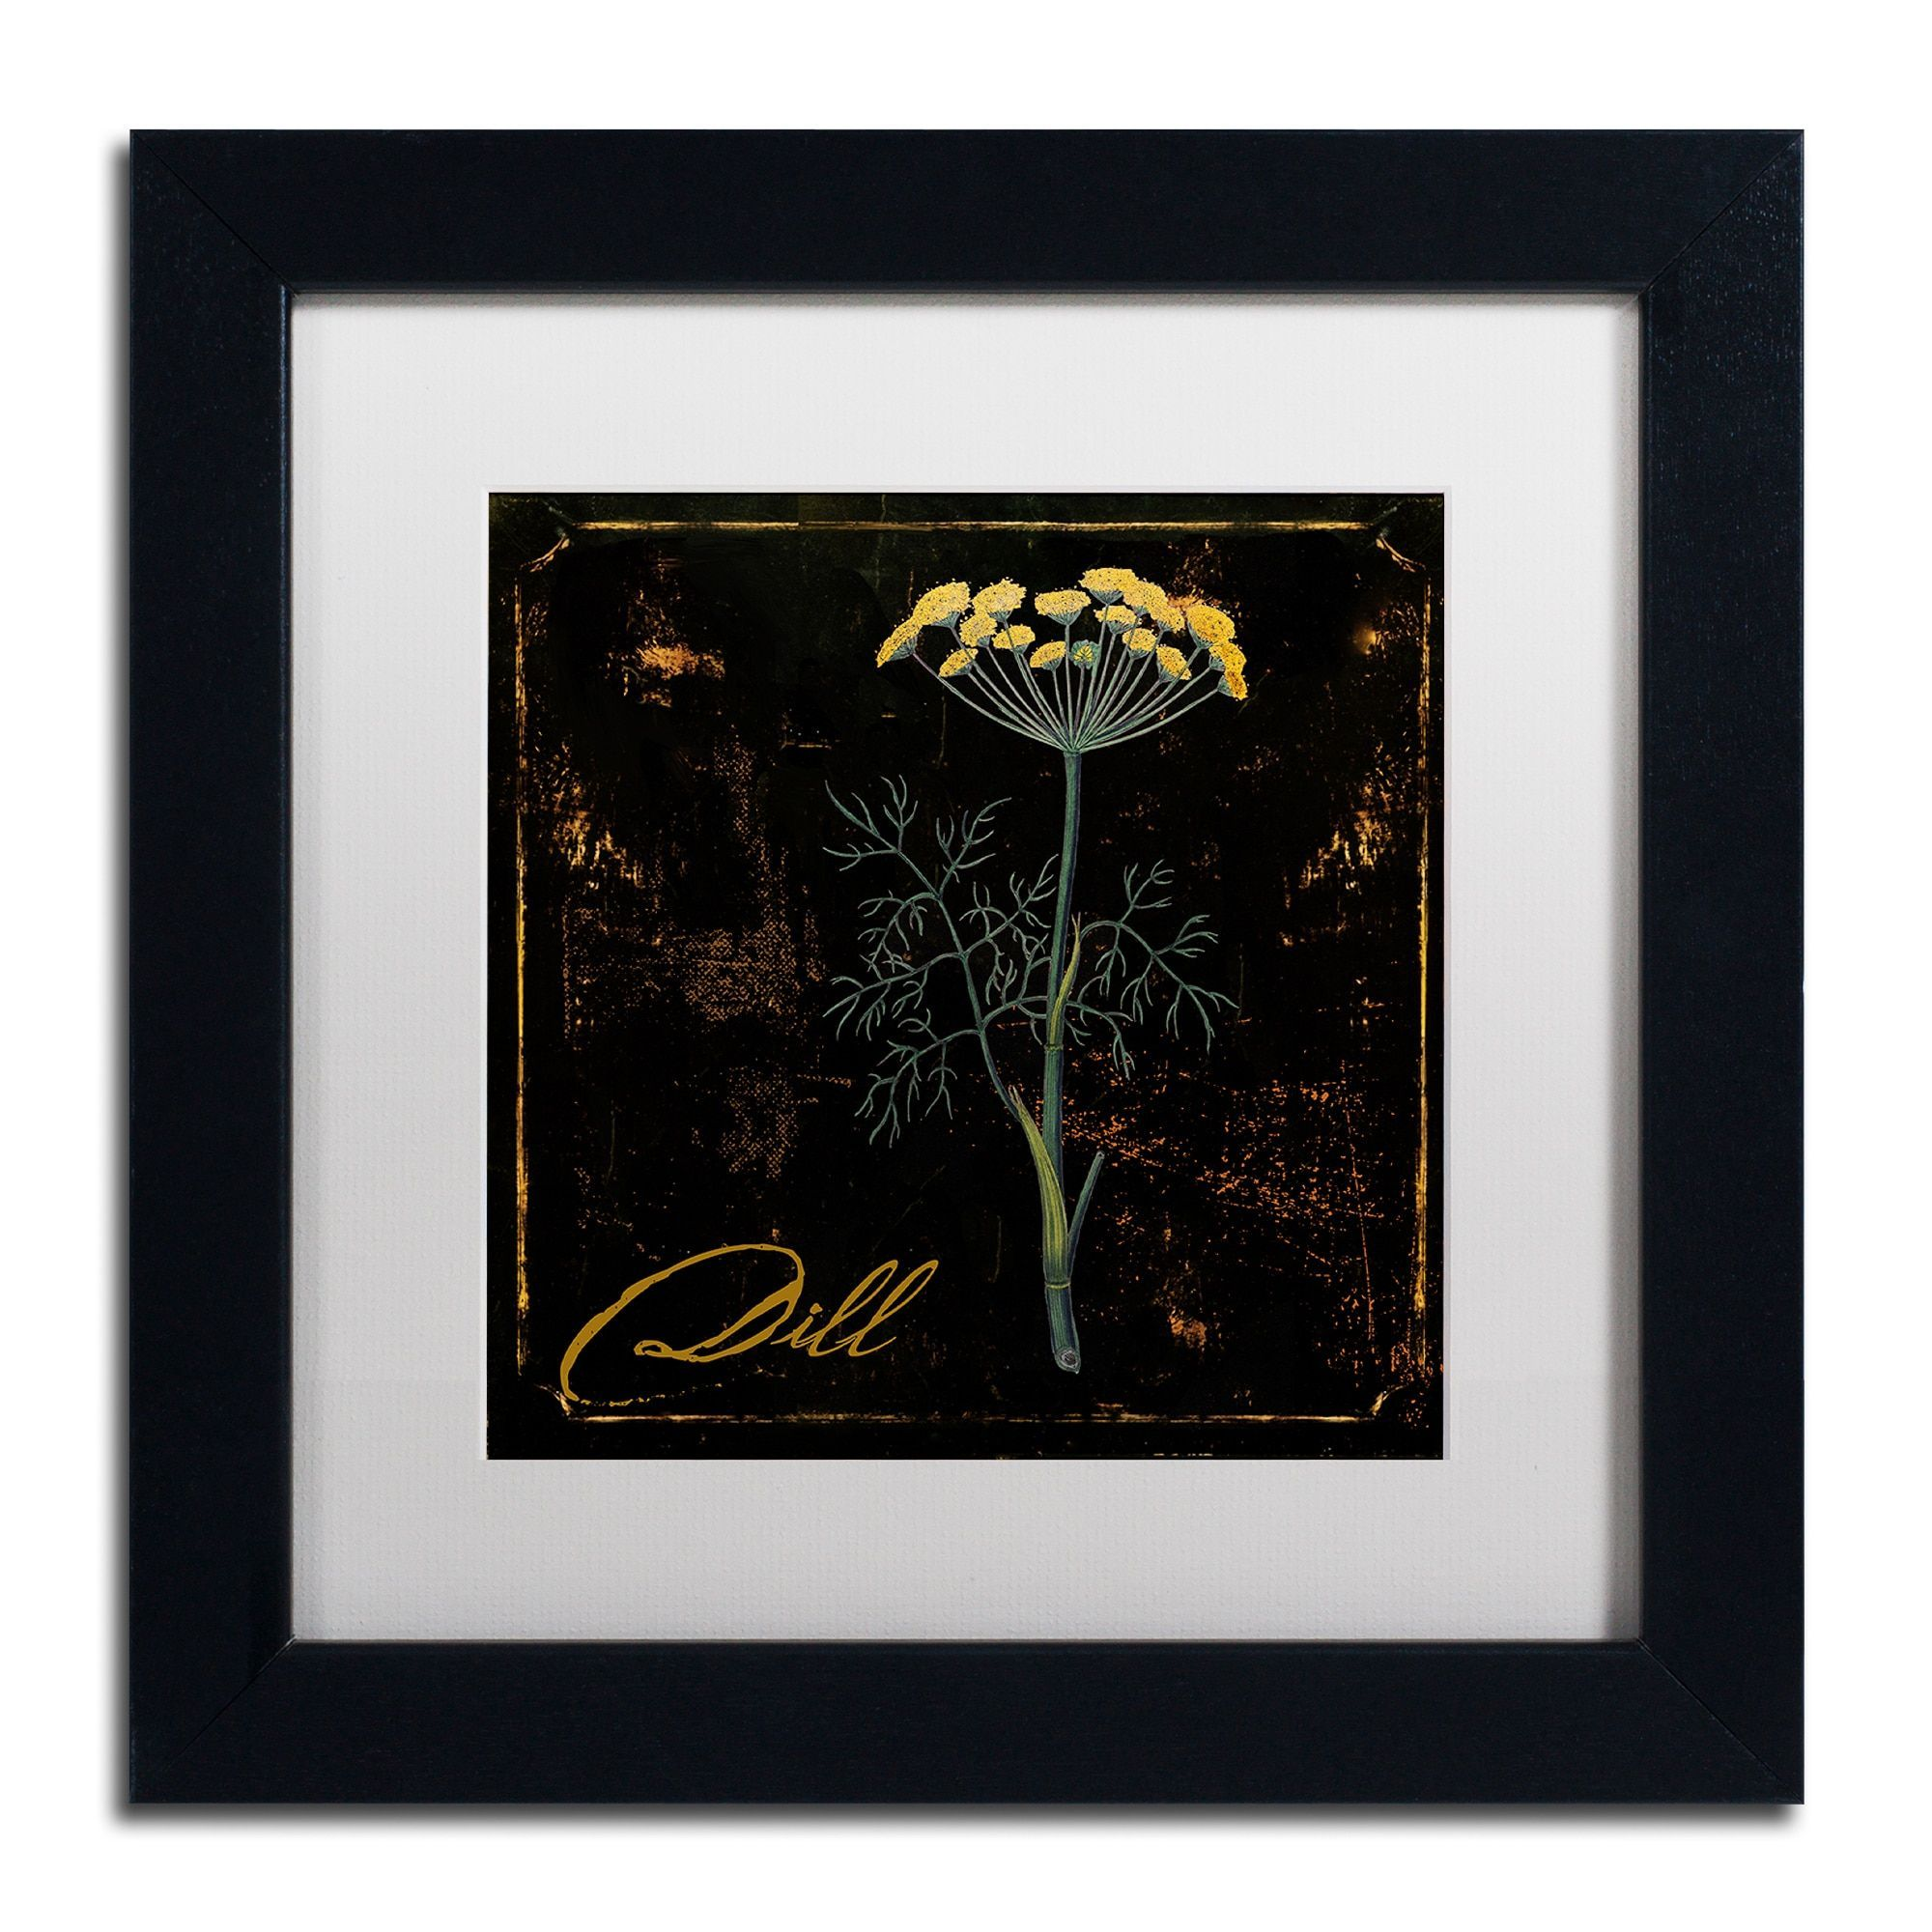 Color bakery u gold herbs iu matted framed art products